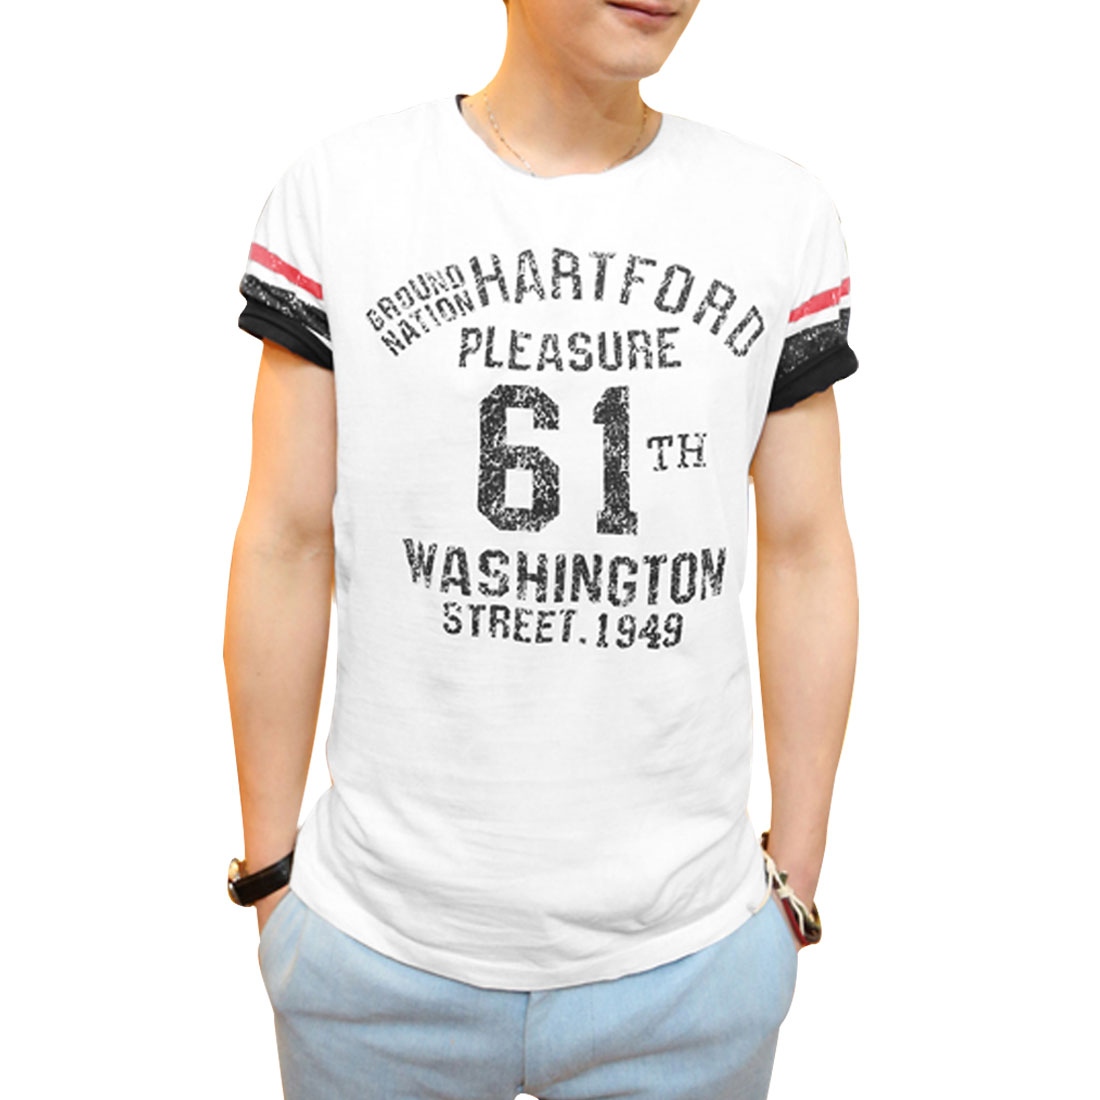 Mens Round Neck Short Sleeve Letters Digit Printing White Shirt S